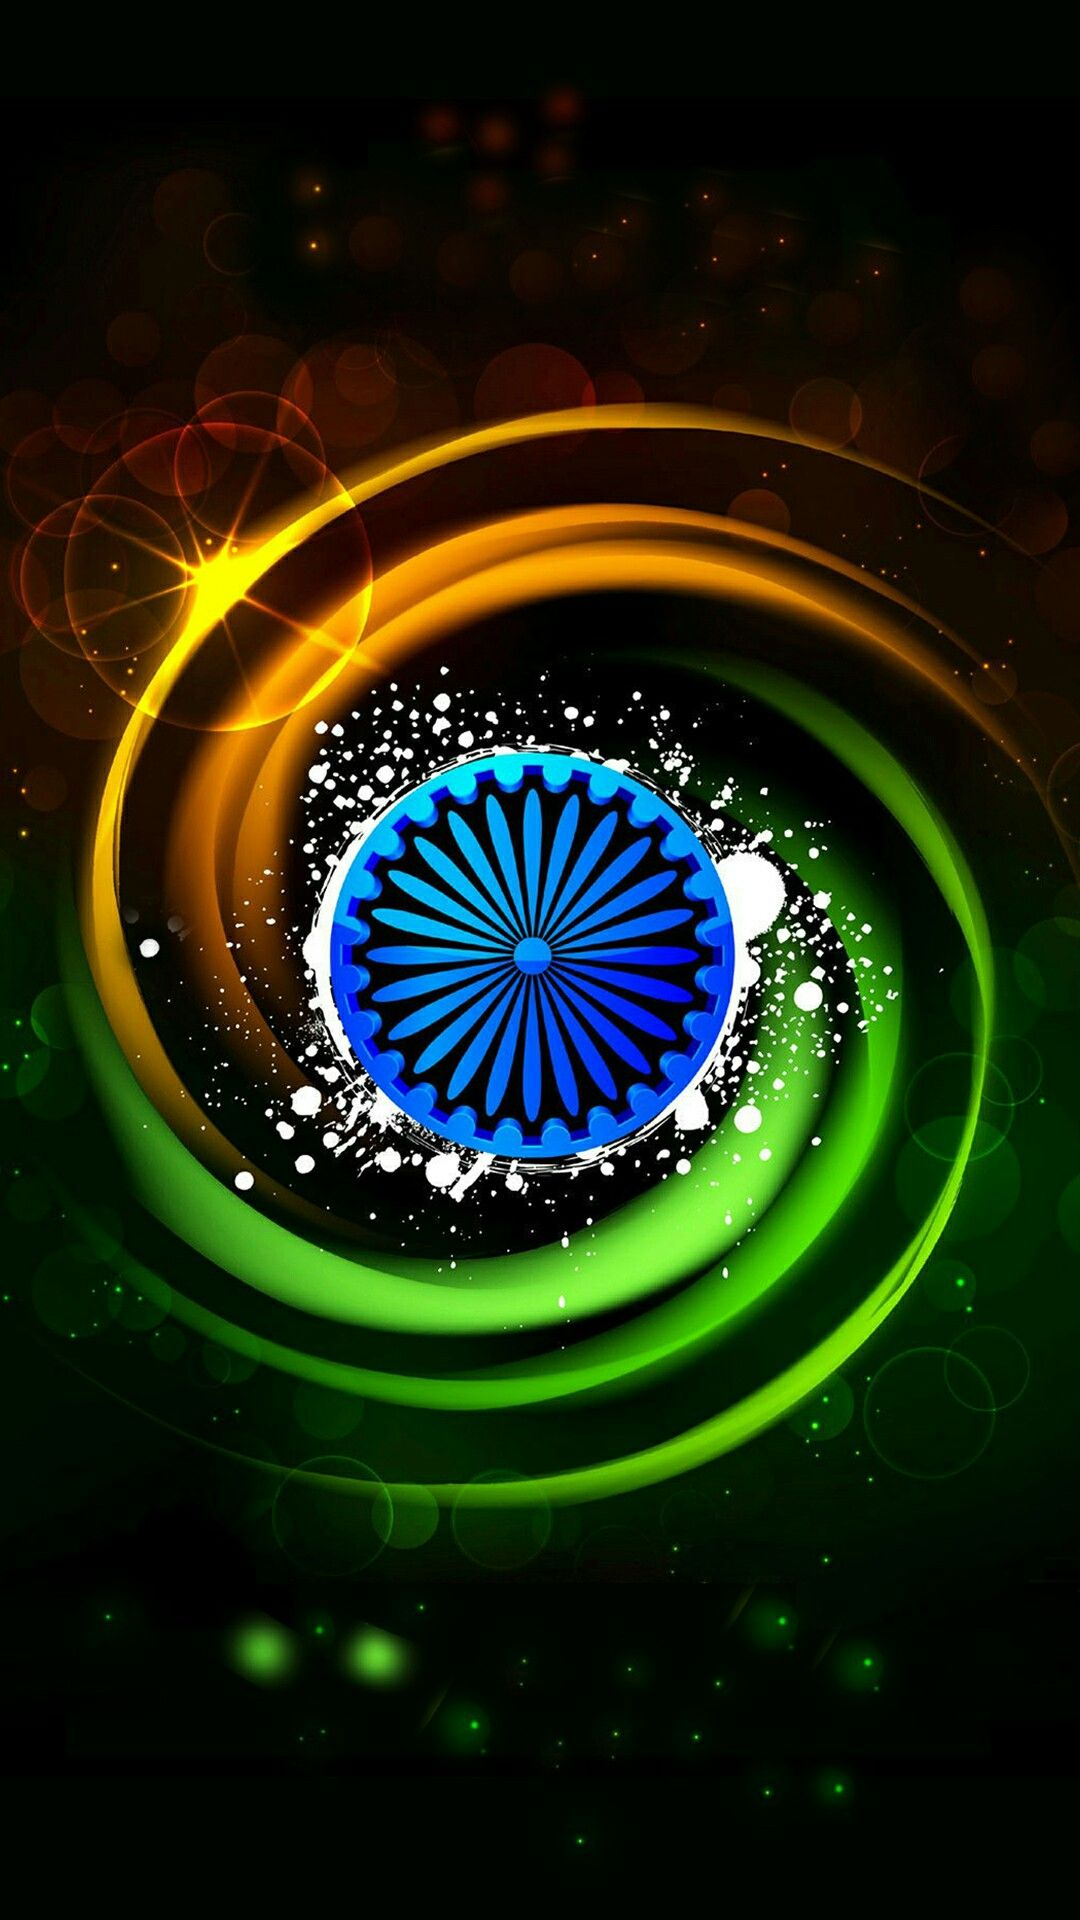 Pin by Rk Yadav on wallpapers 2 Indian flag wallpaper